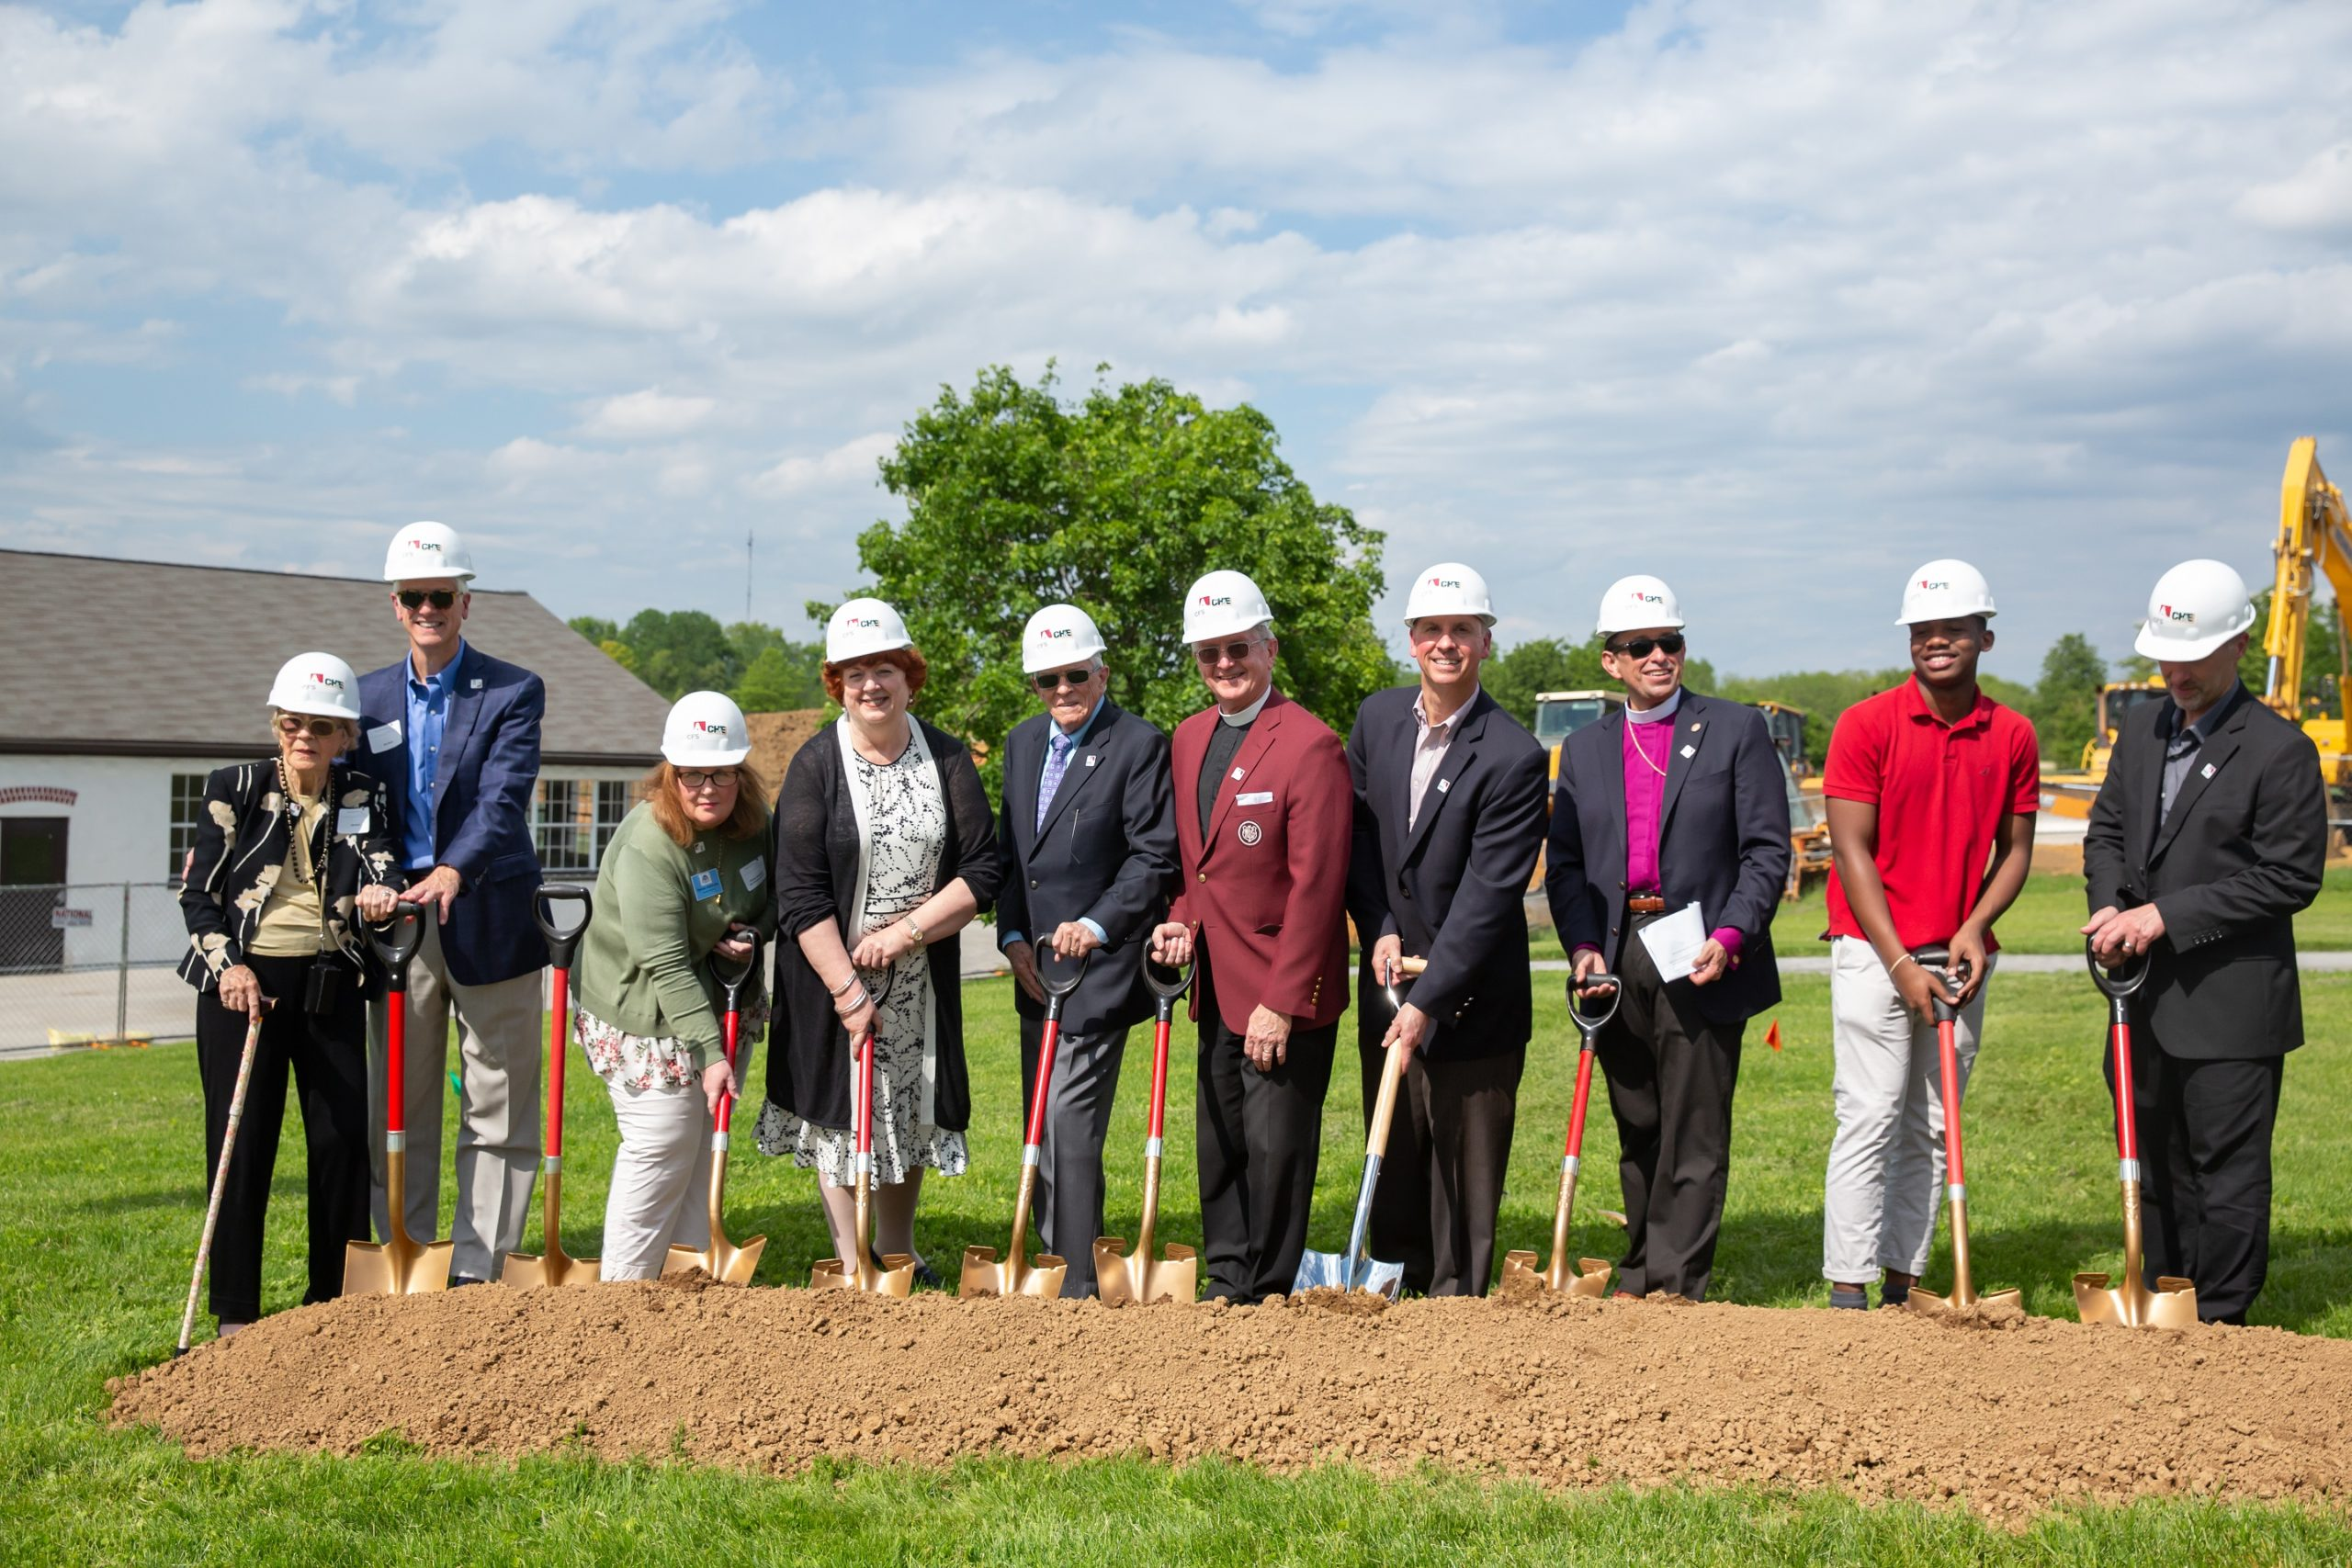 Church Farm School Breaks Ground on $15M Campus Modernization Project